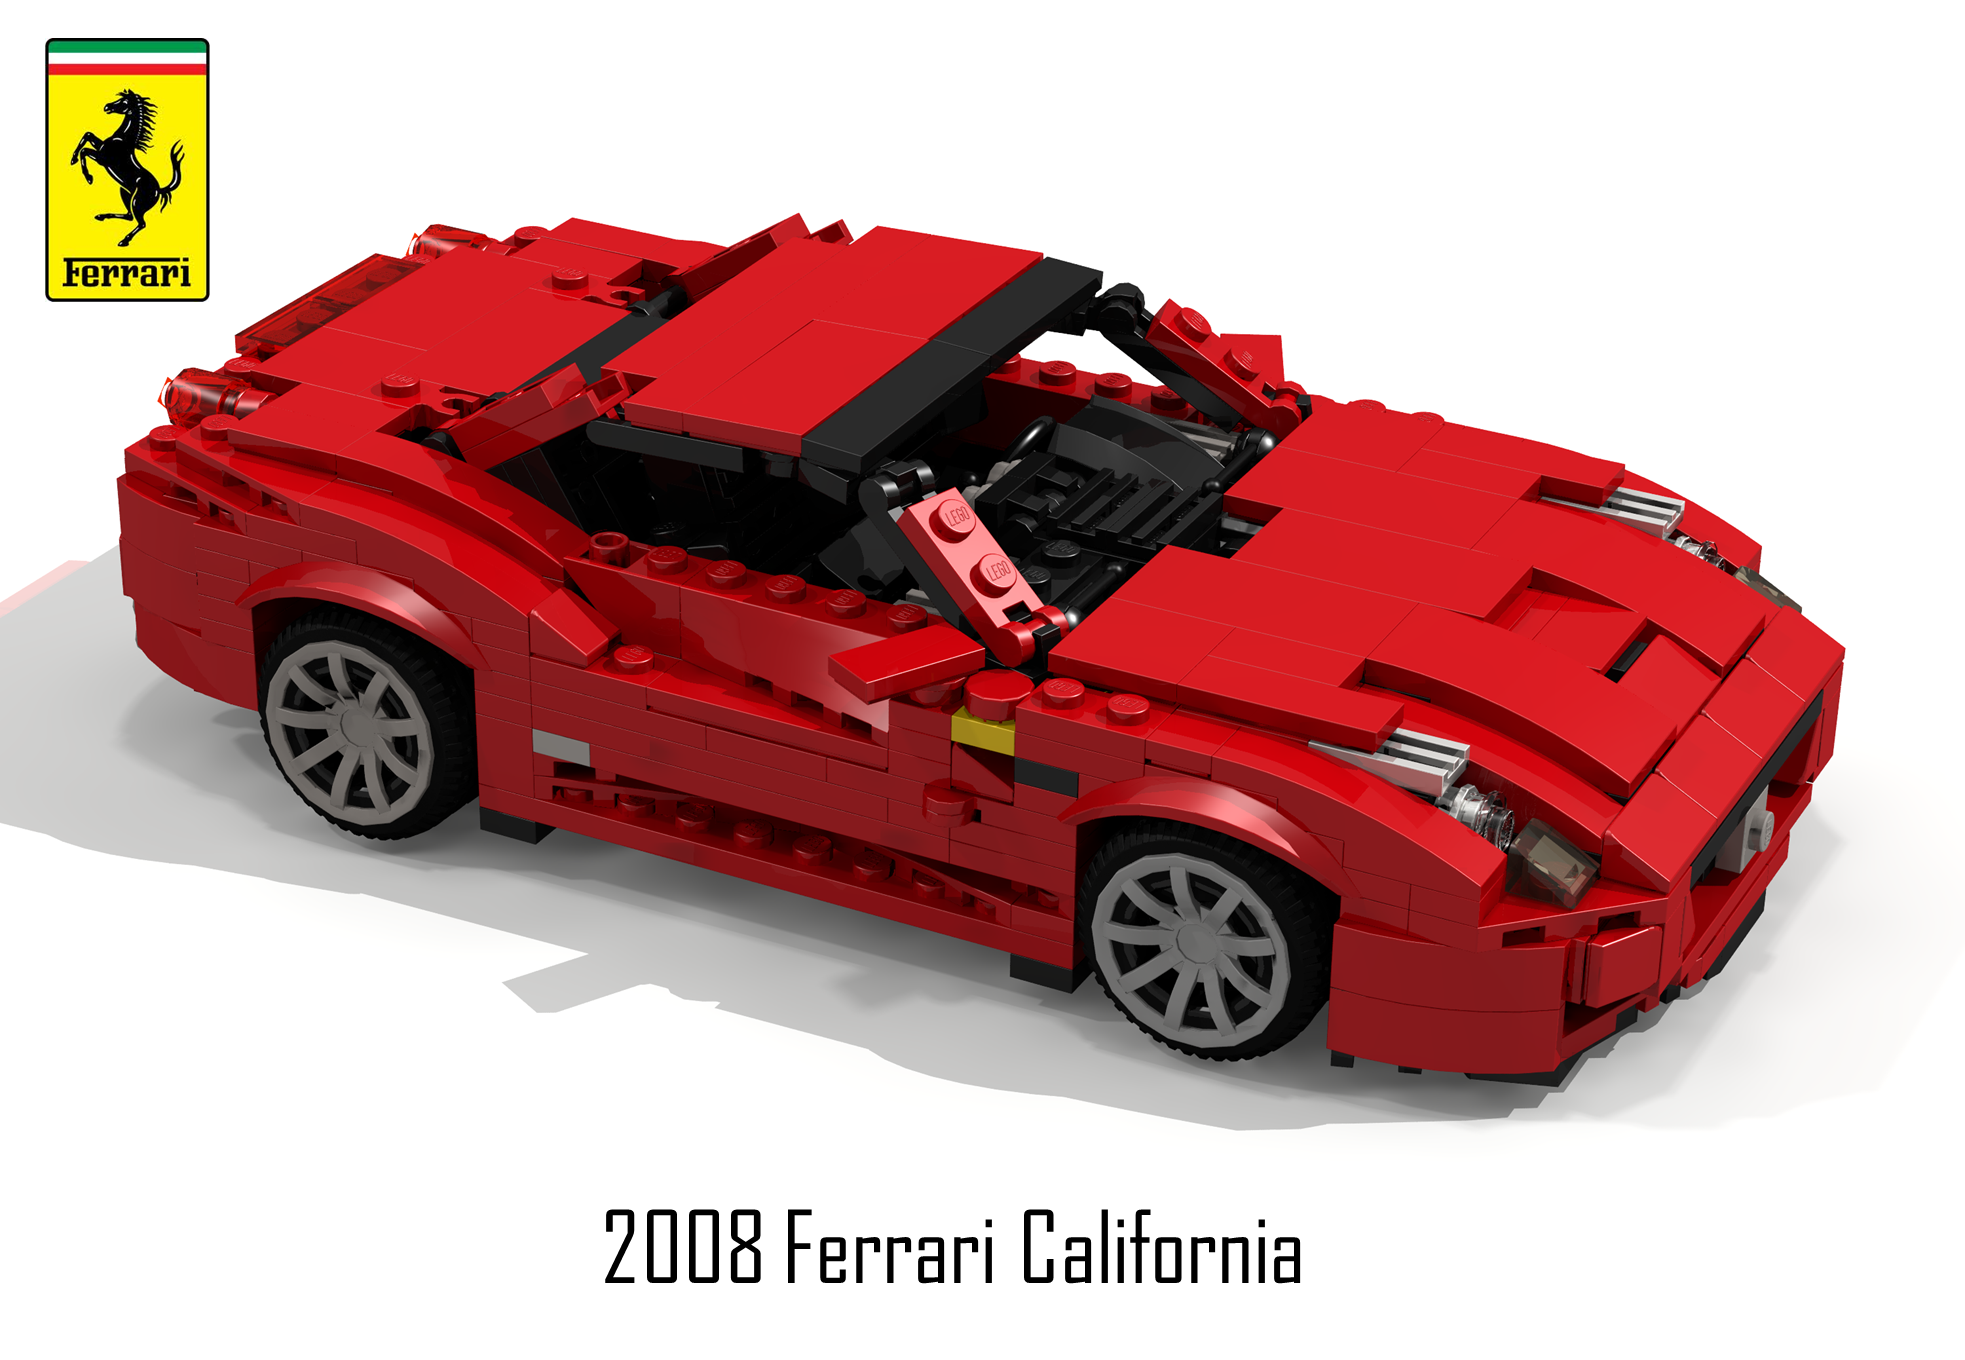 2008_ferrari_california.png